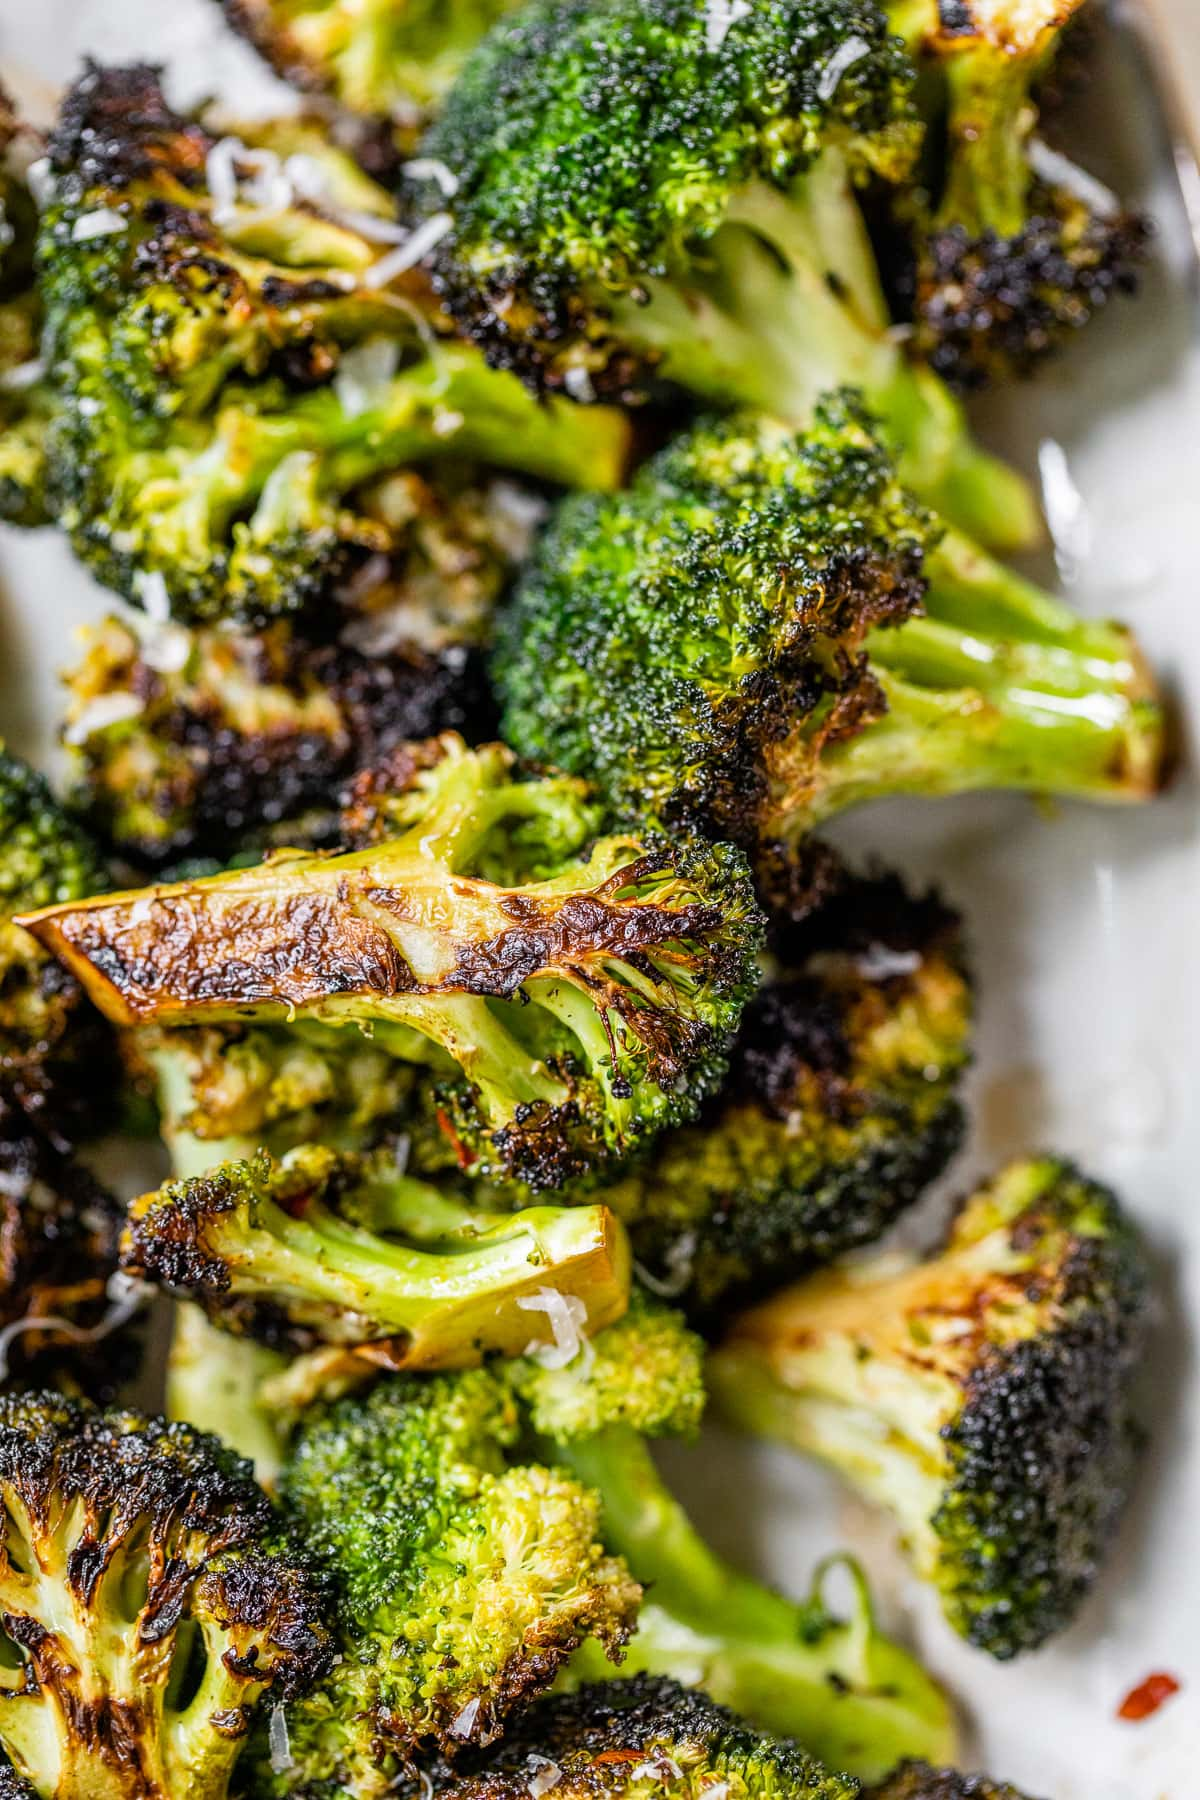 grilled chopped broccoli on a plate